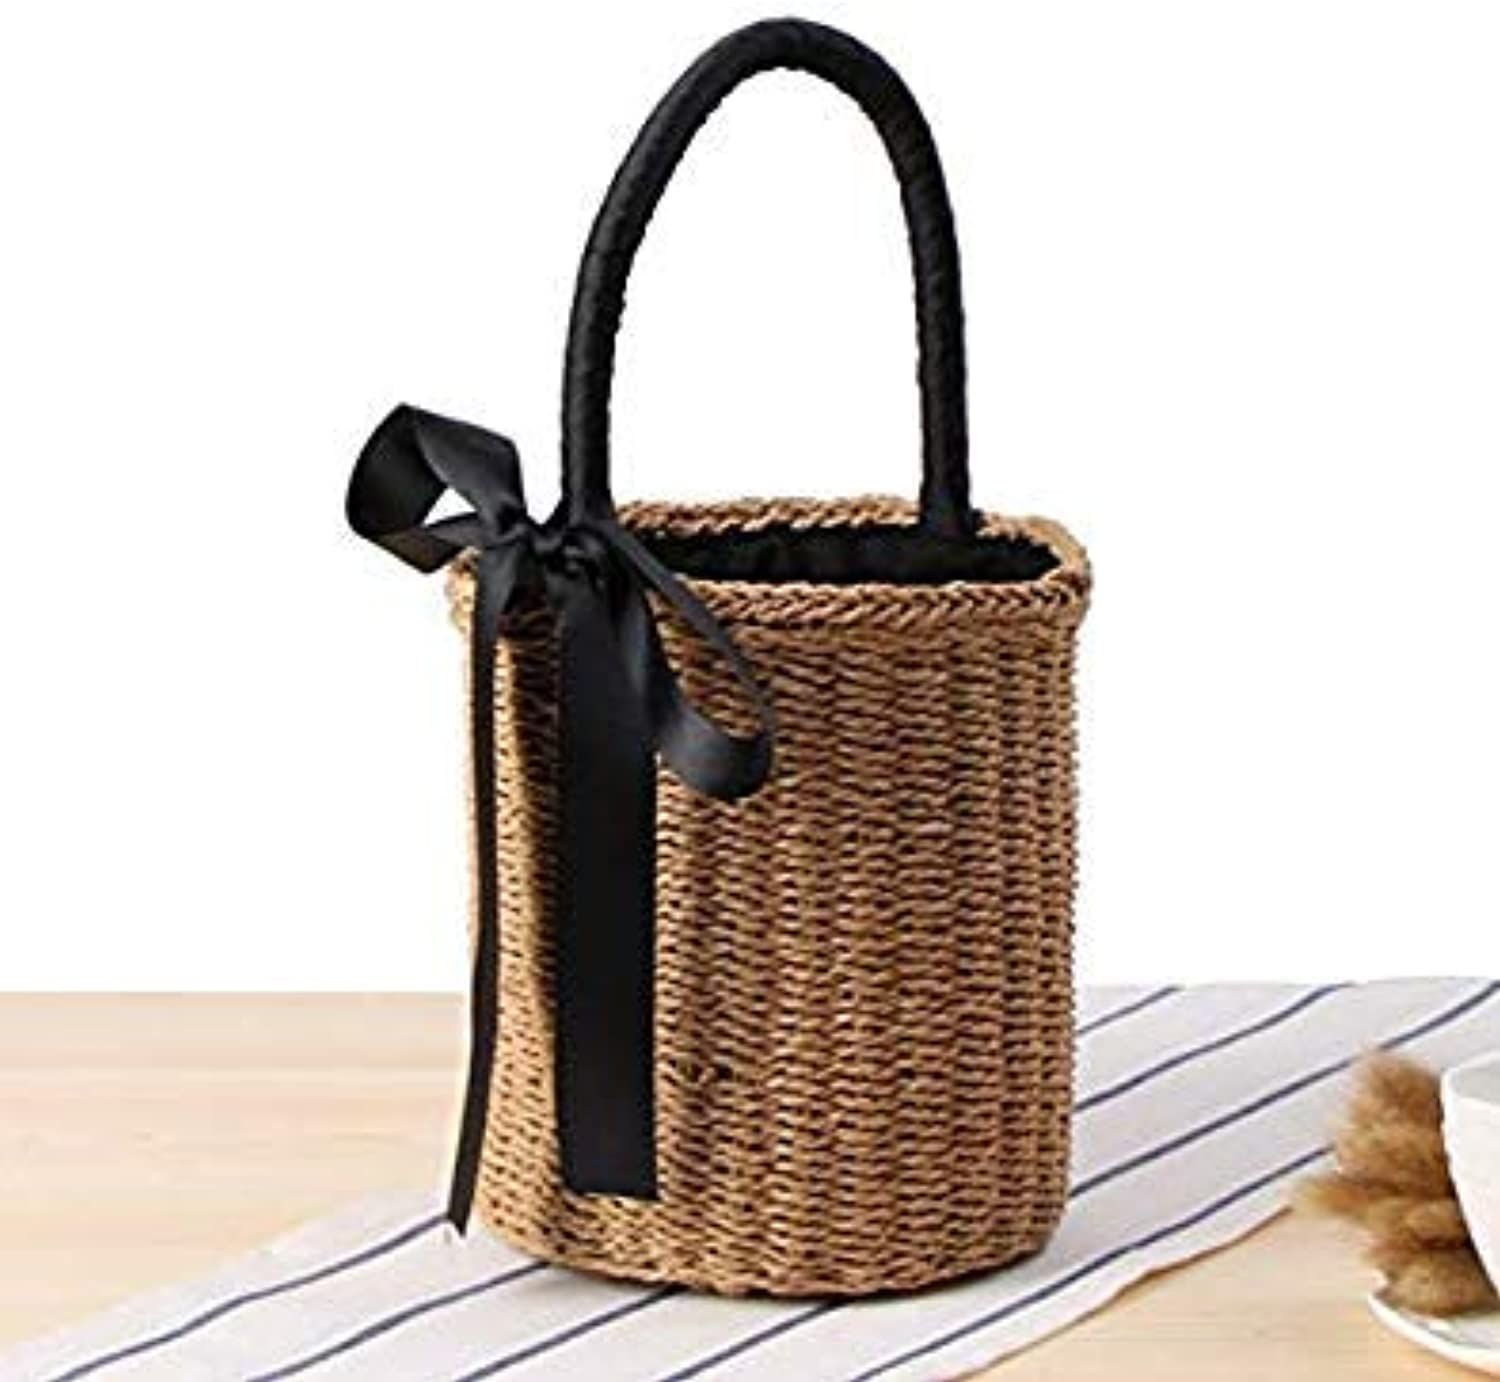 Bloomerang Japan Style Bucket Cylindrical Straw Bags Bow Wheat-Straw Woven Women Handbags Shoulder Tote Bag String color Brown